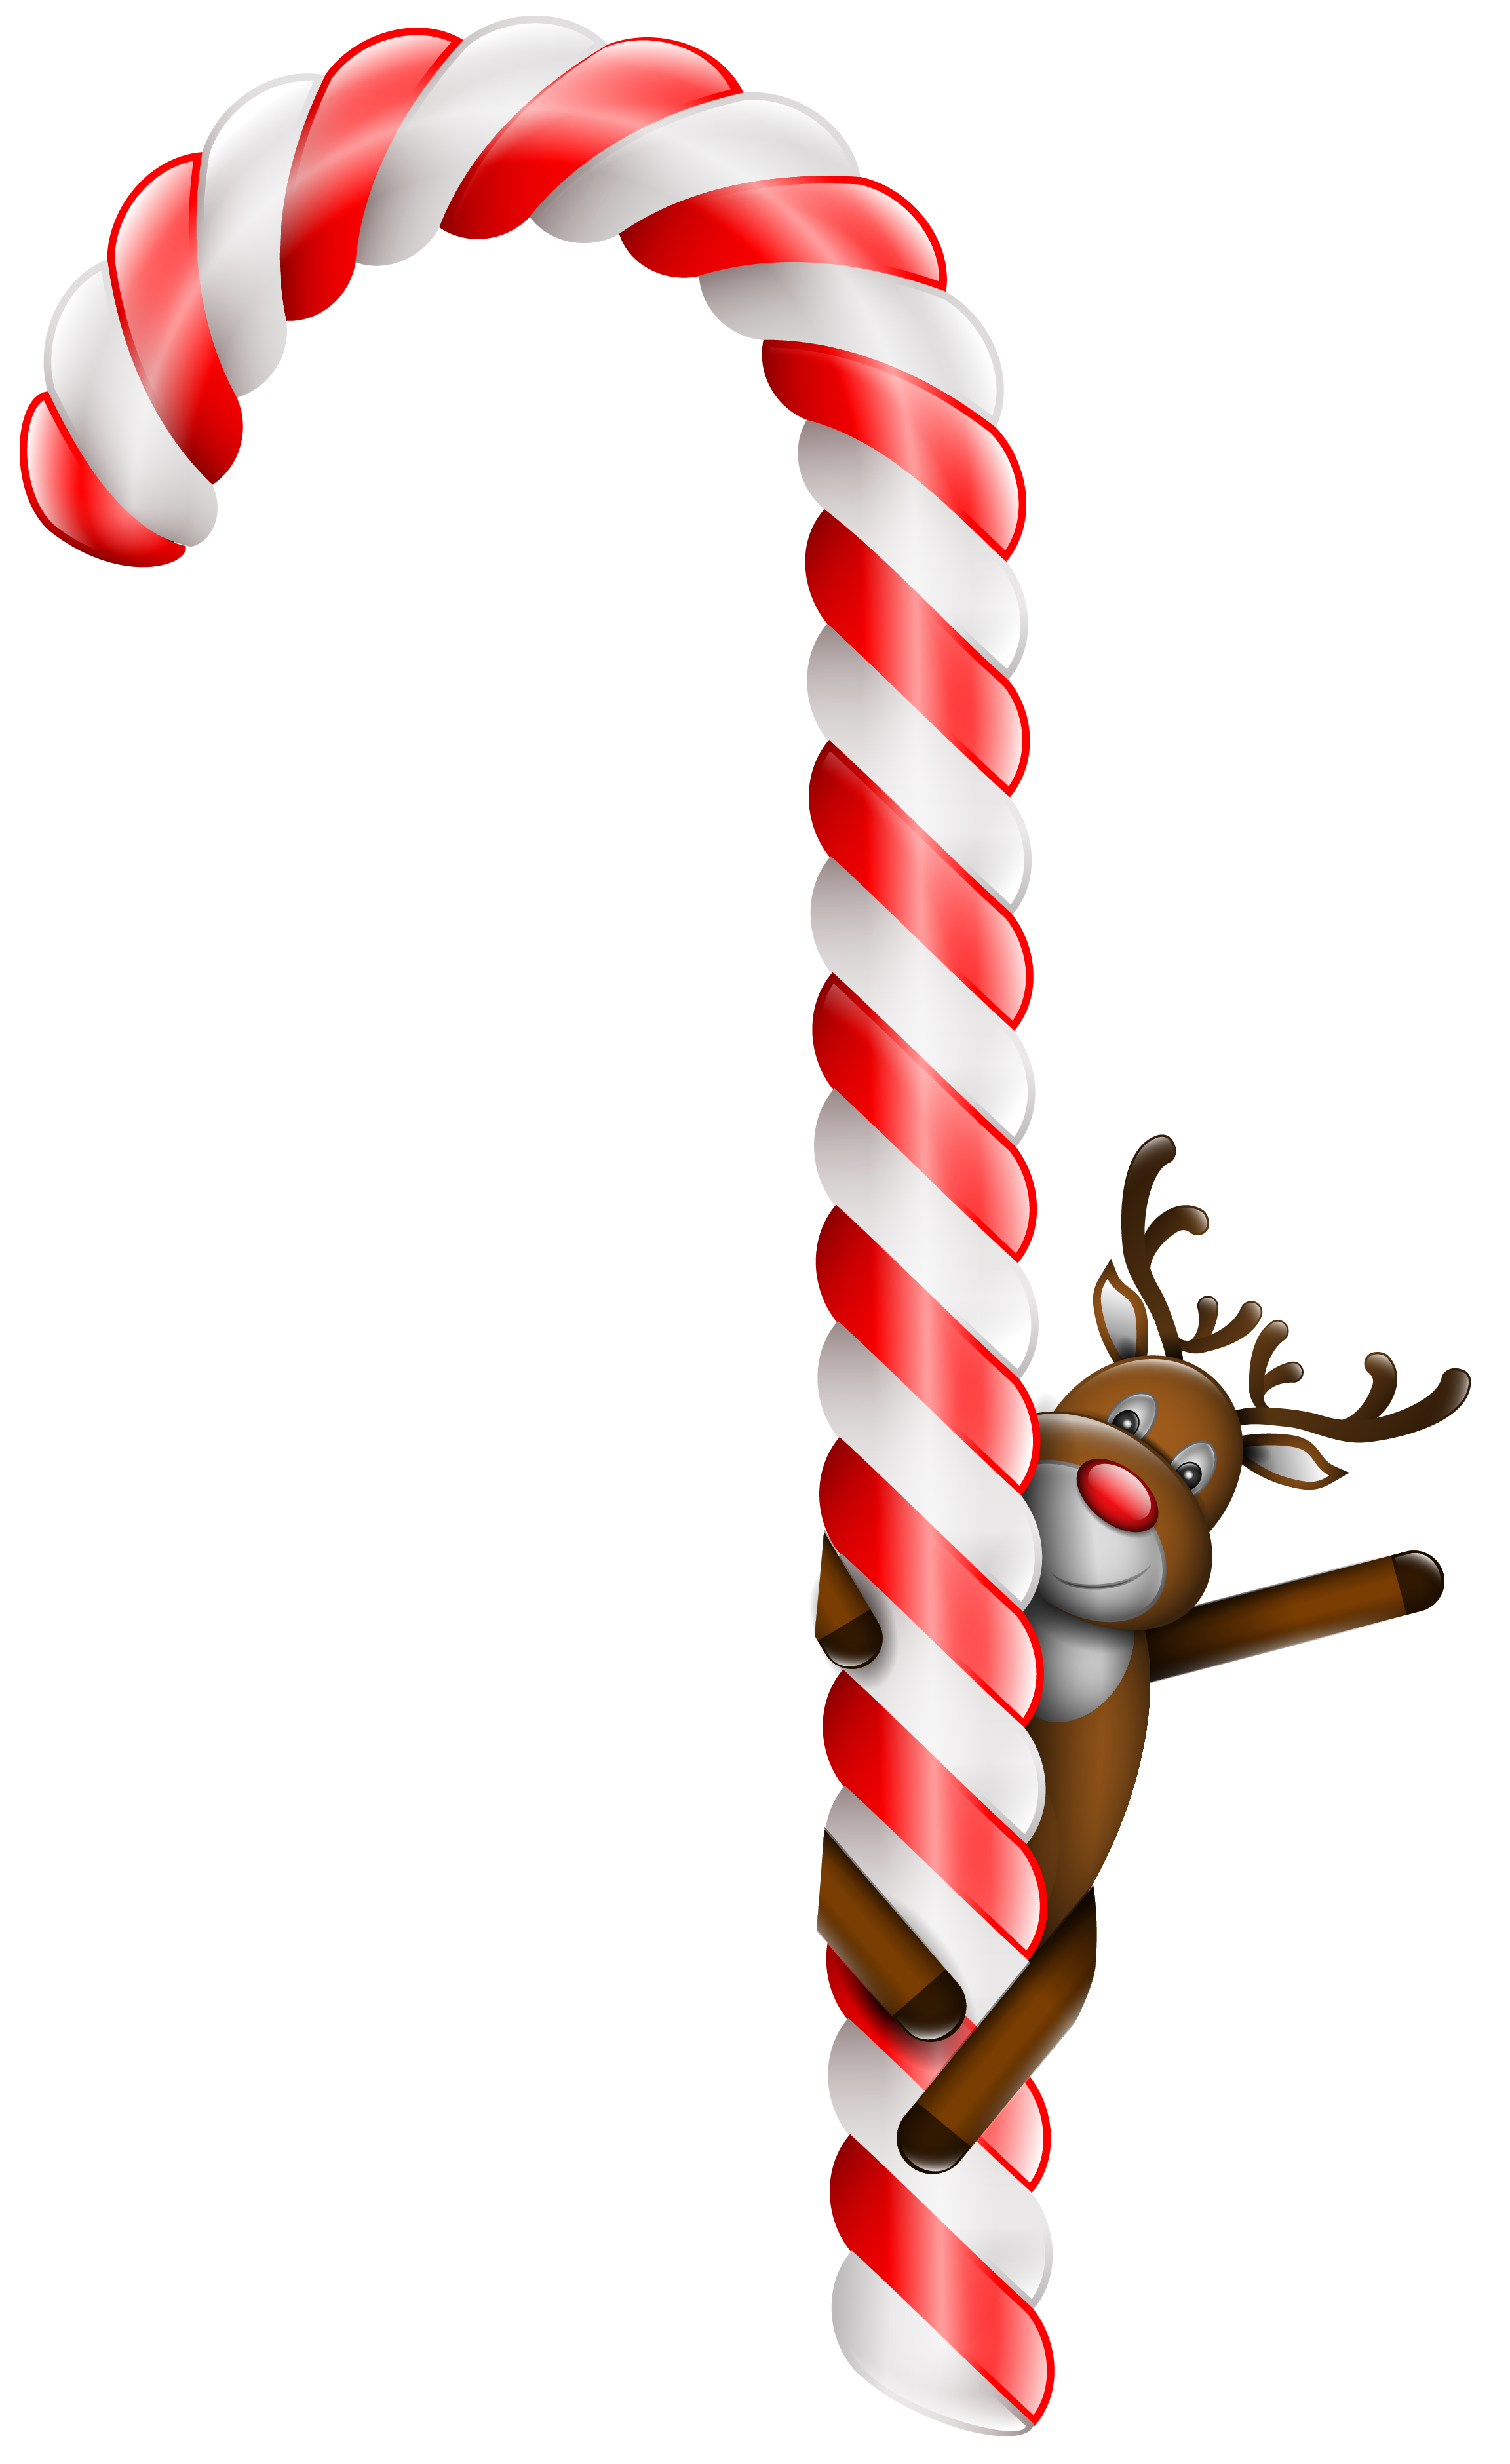 Candy Cane clipart transparent background Christmas  Clipart Large with